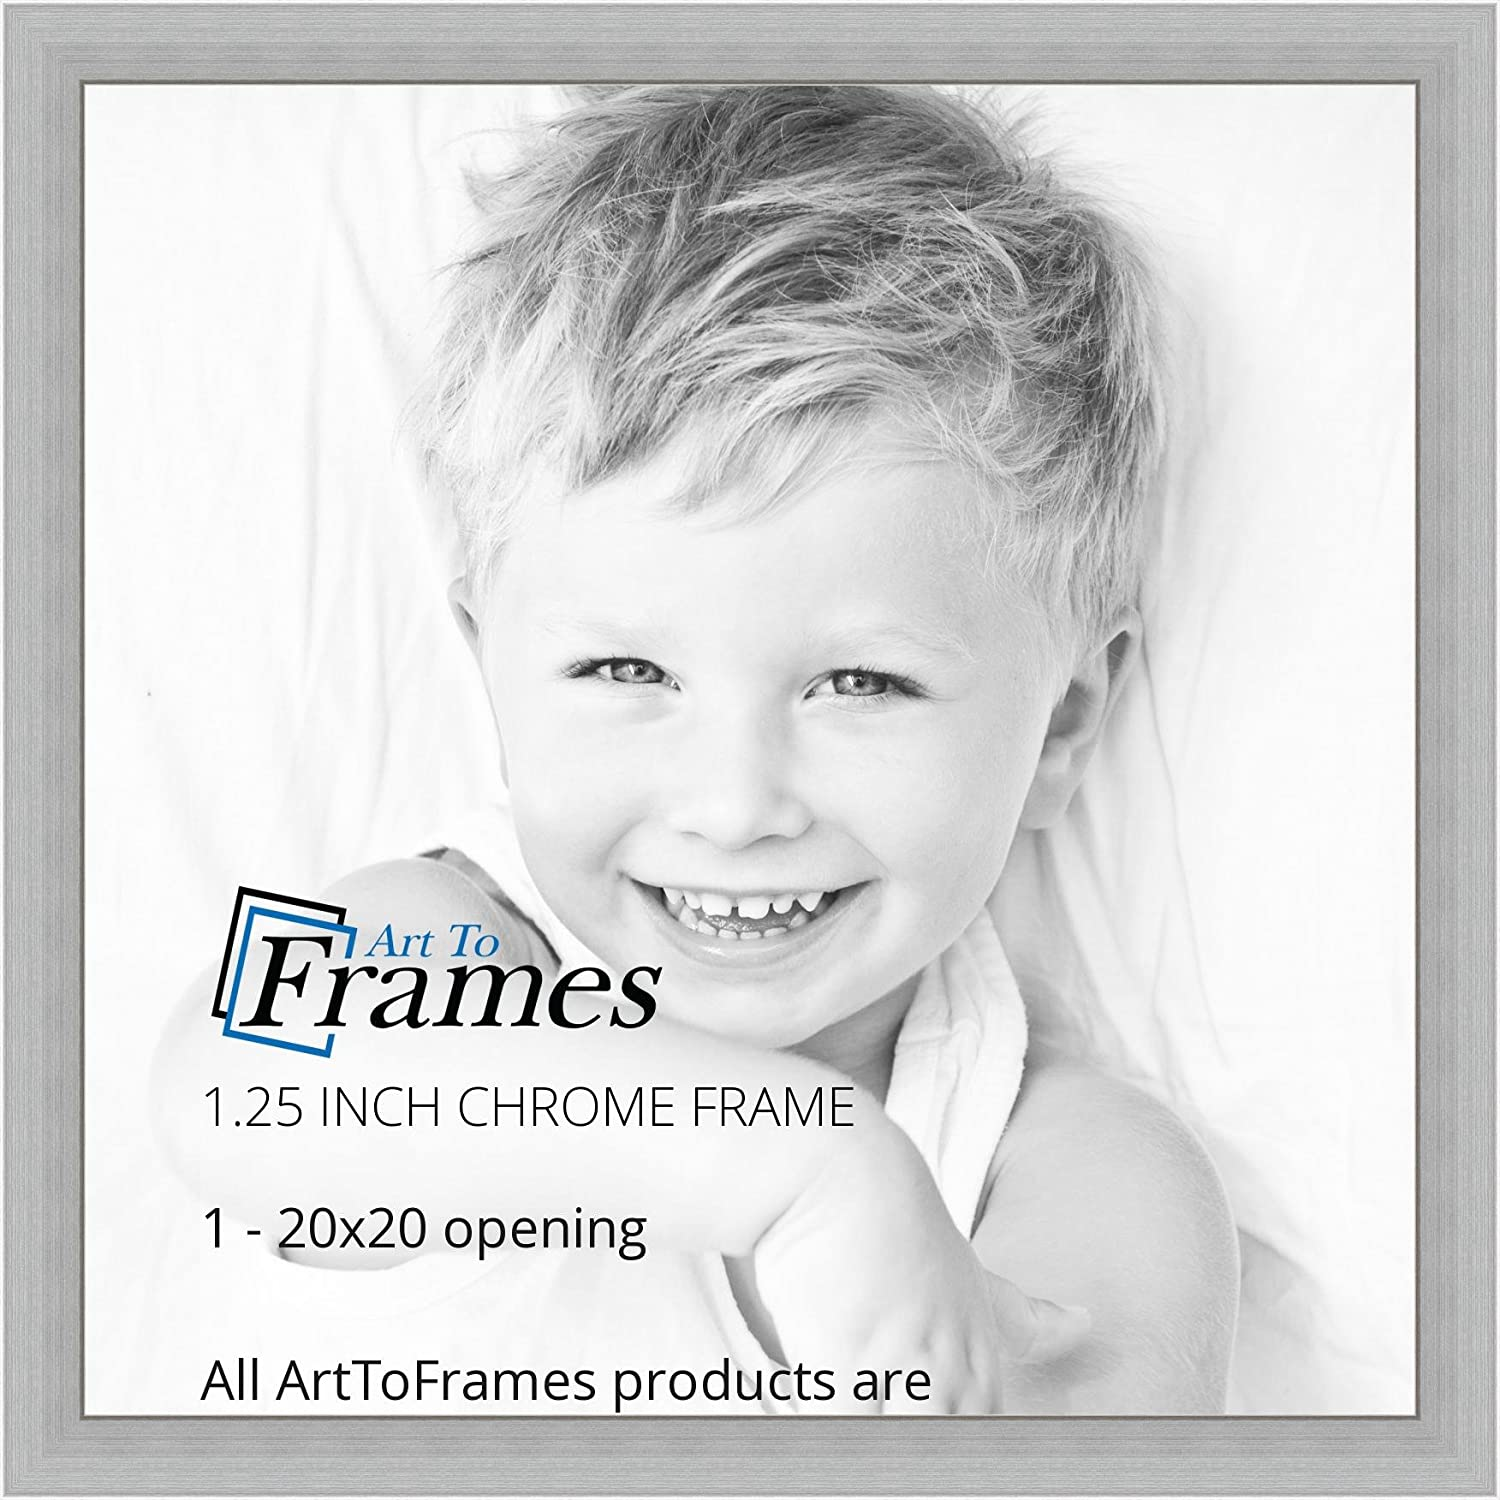 Amazon arttoframes 20x20 inch chrome stainless steel picture amazon arttoframes 20x20 inch chrome stainless steel picture frame womfrbw26966 20x20 single frames jeuxipadfo Image collections